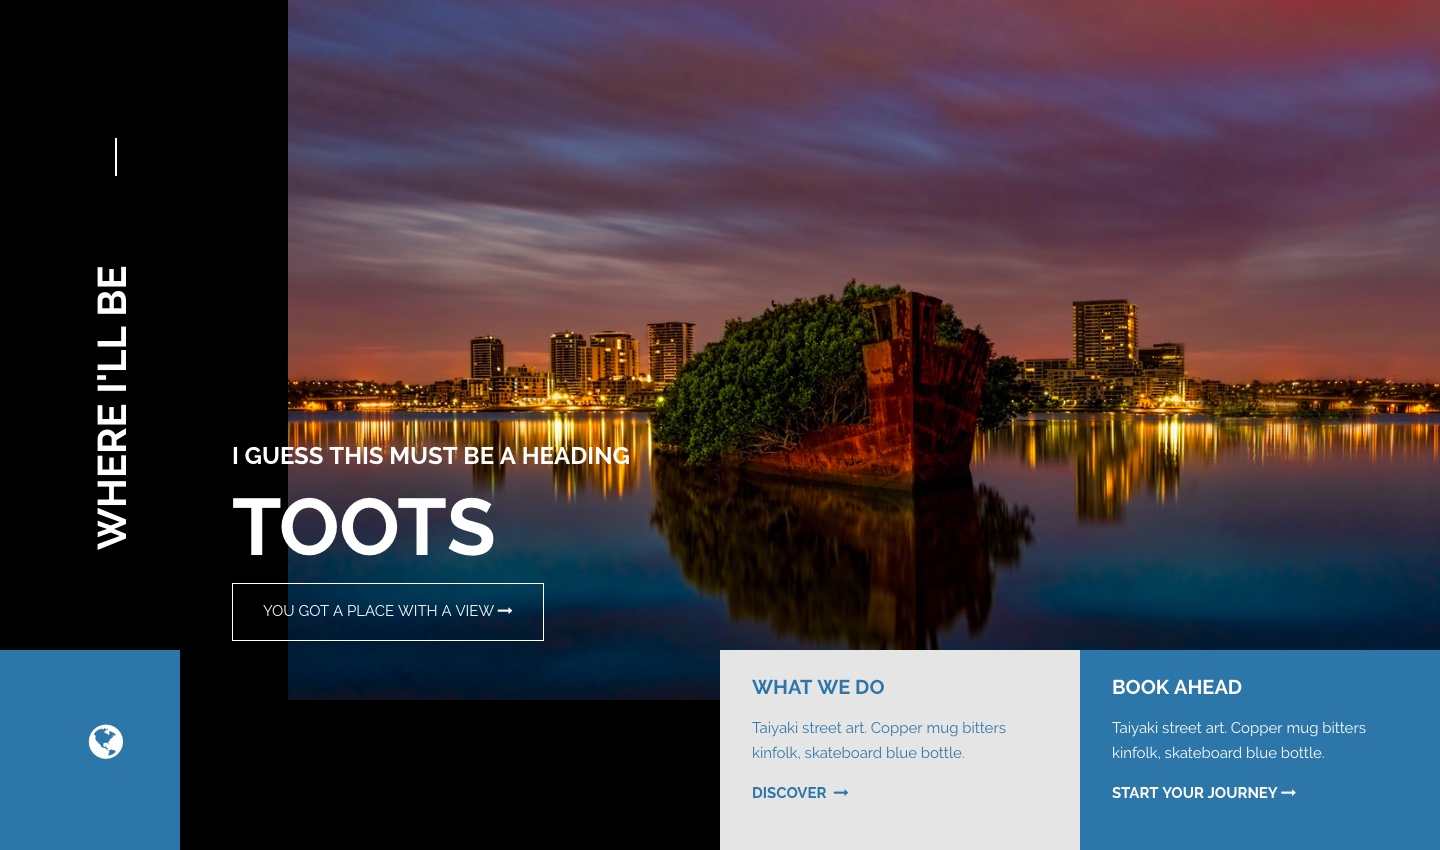 Toots Website Home Page Banner